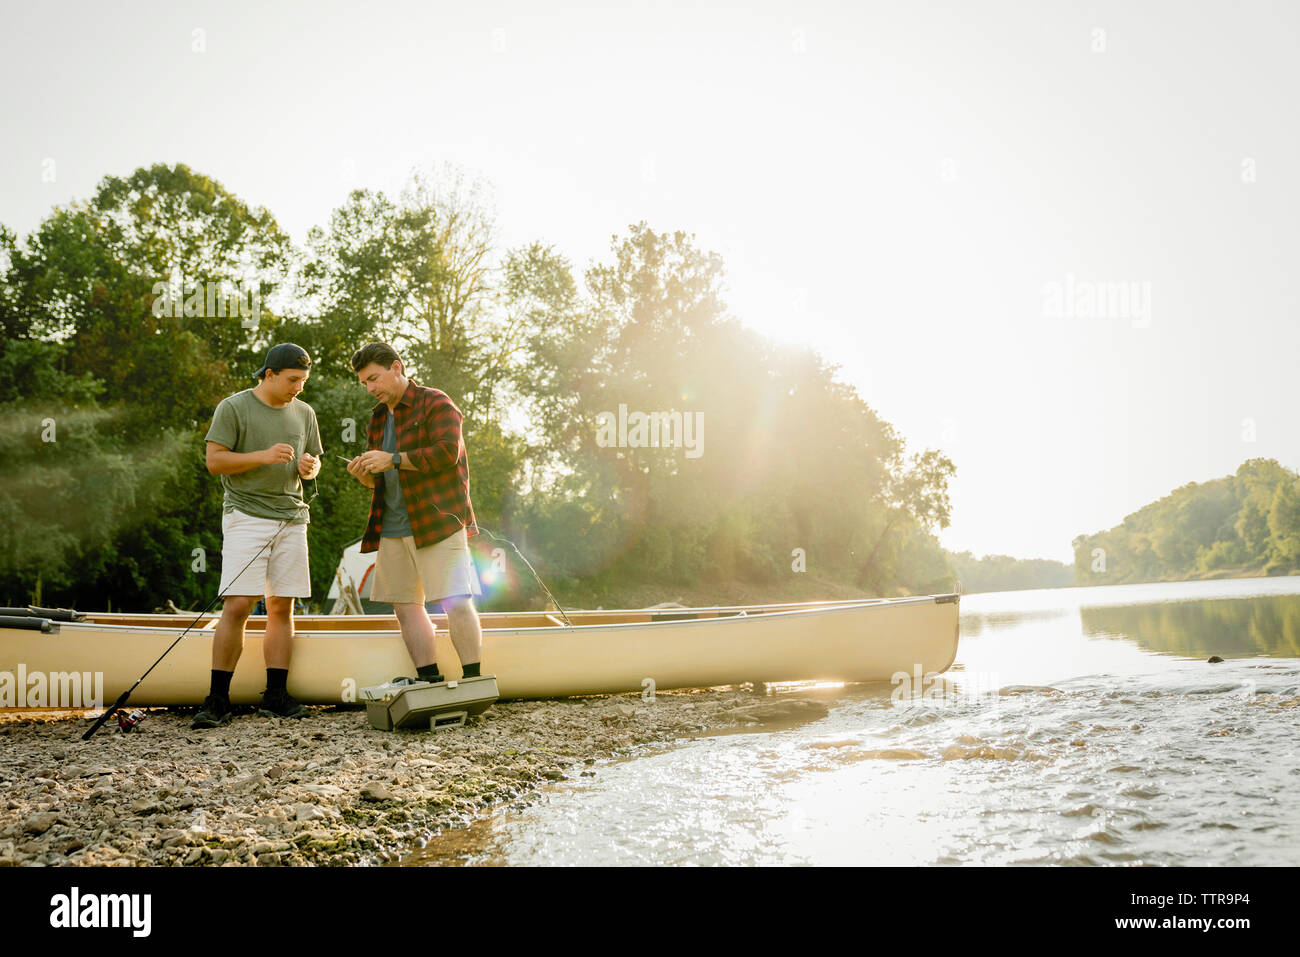 Male friends adjusting fishing tackles while standing by boat at lakeshore - Stock Image